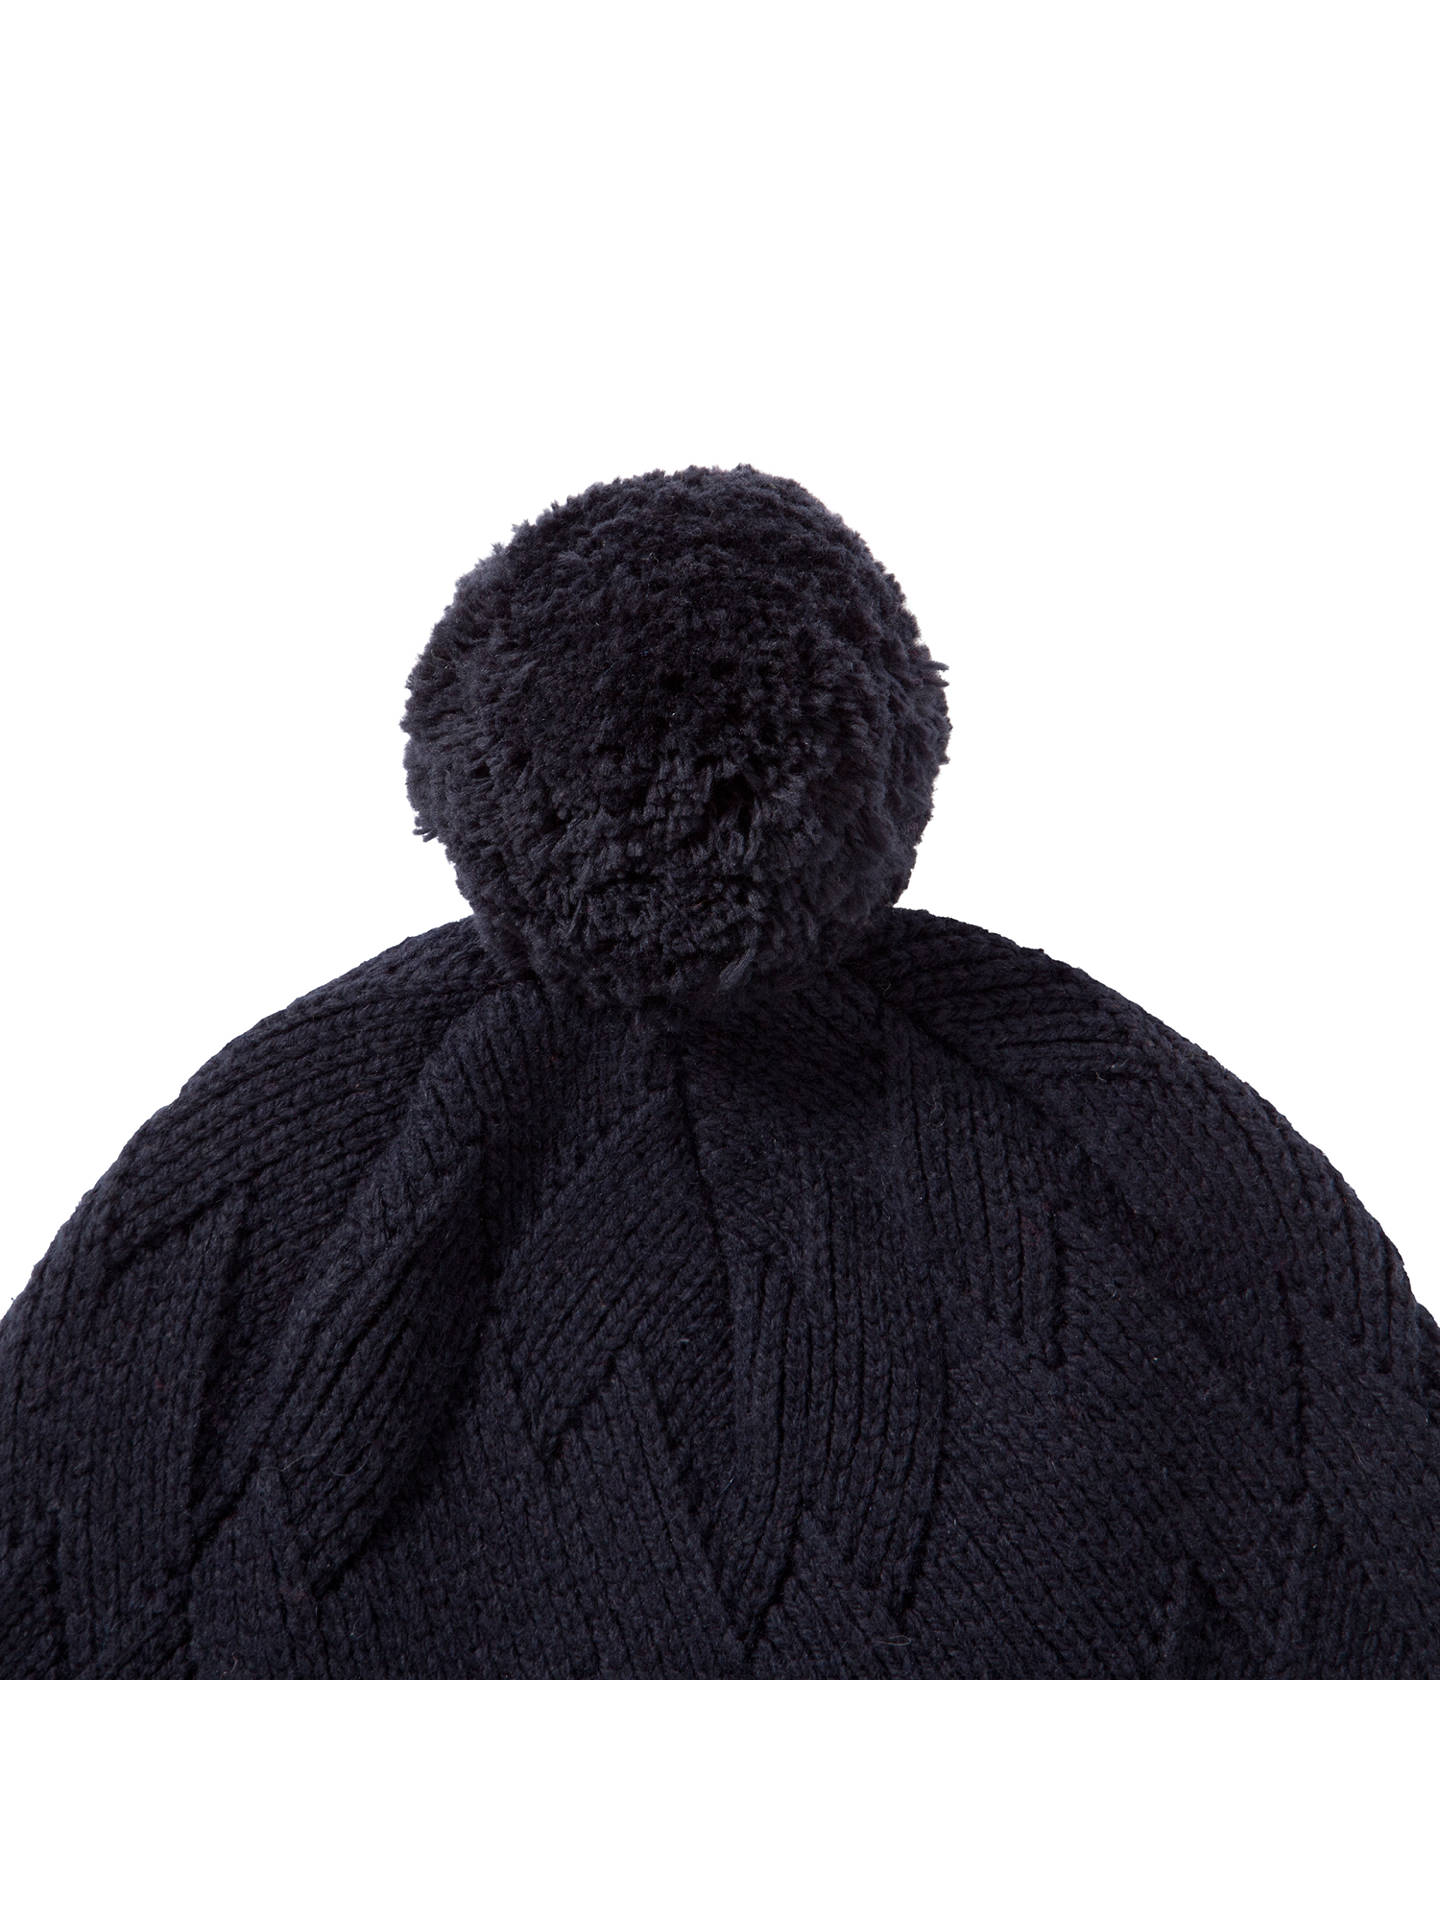 ... BuyTed Baker Maxey Bobble Beanie Hat a03ef49311e